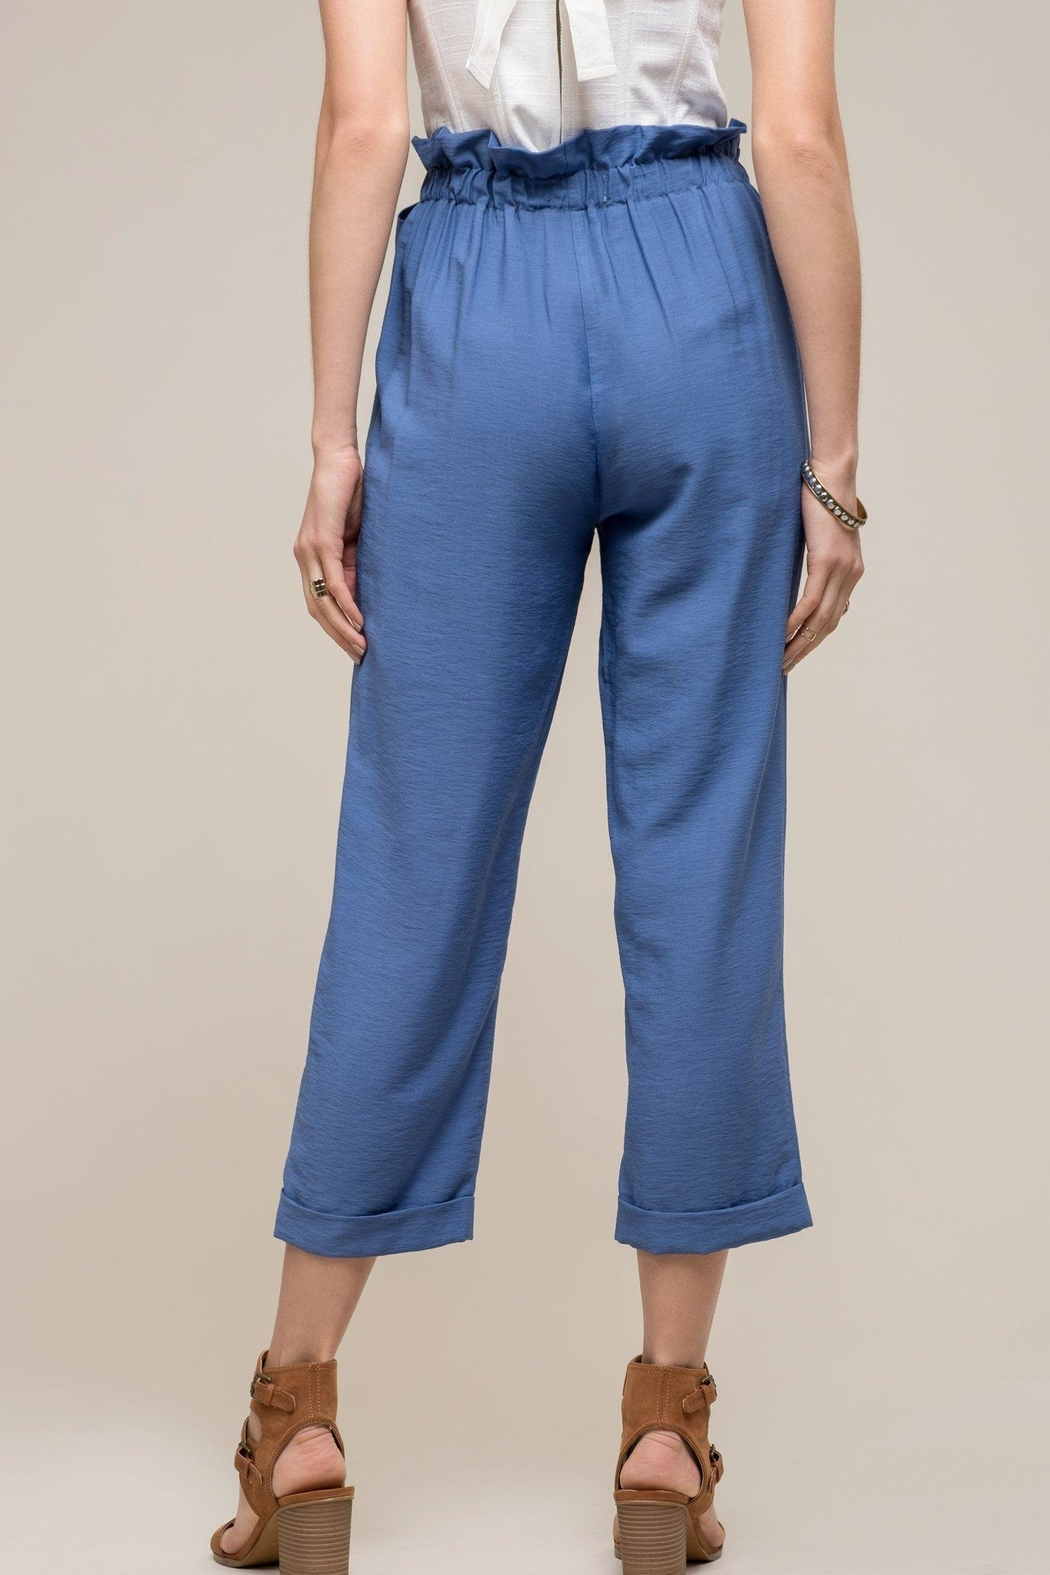 Moon River Alyza Bow Pants - Side Cropped Image